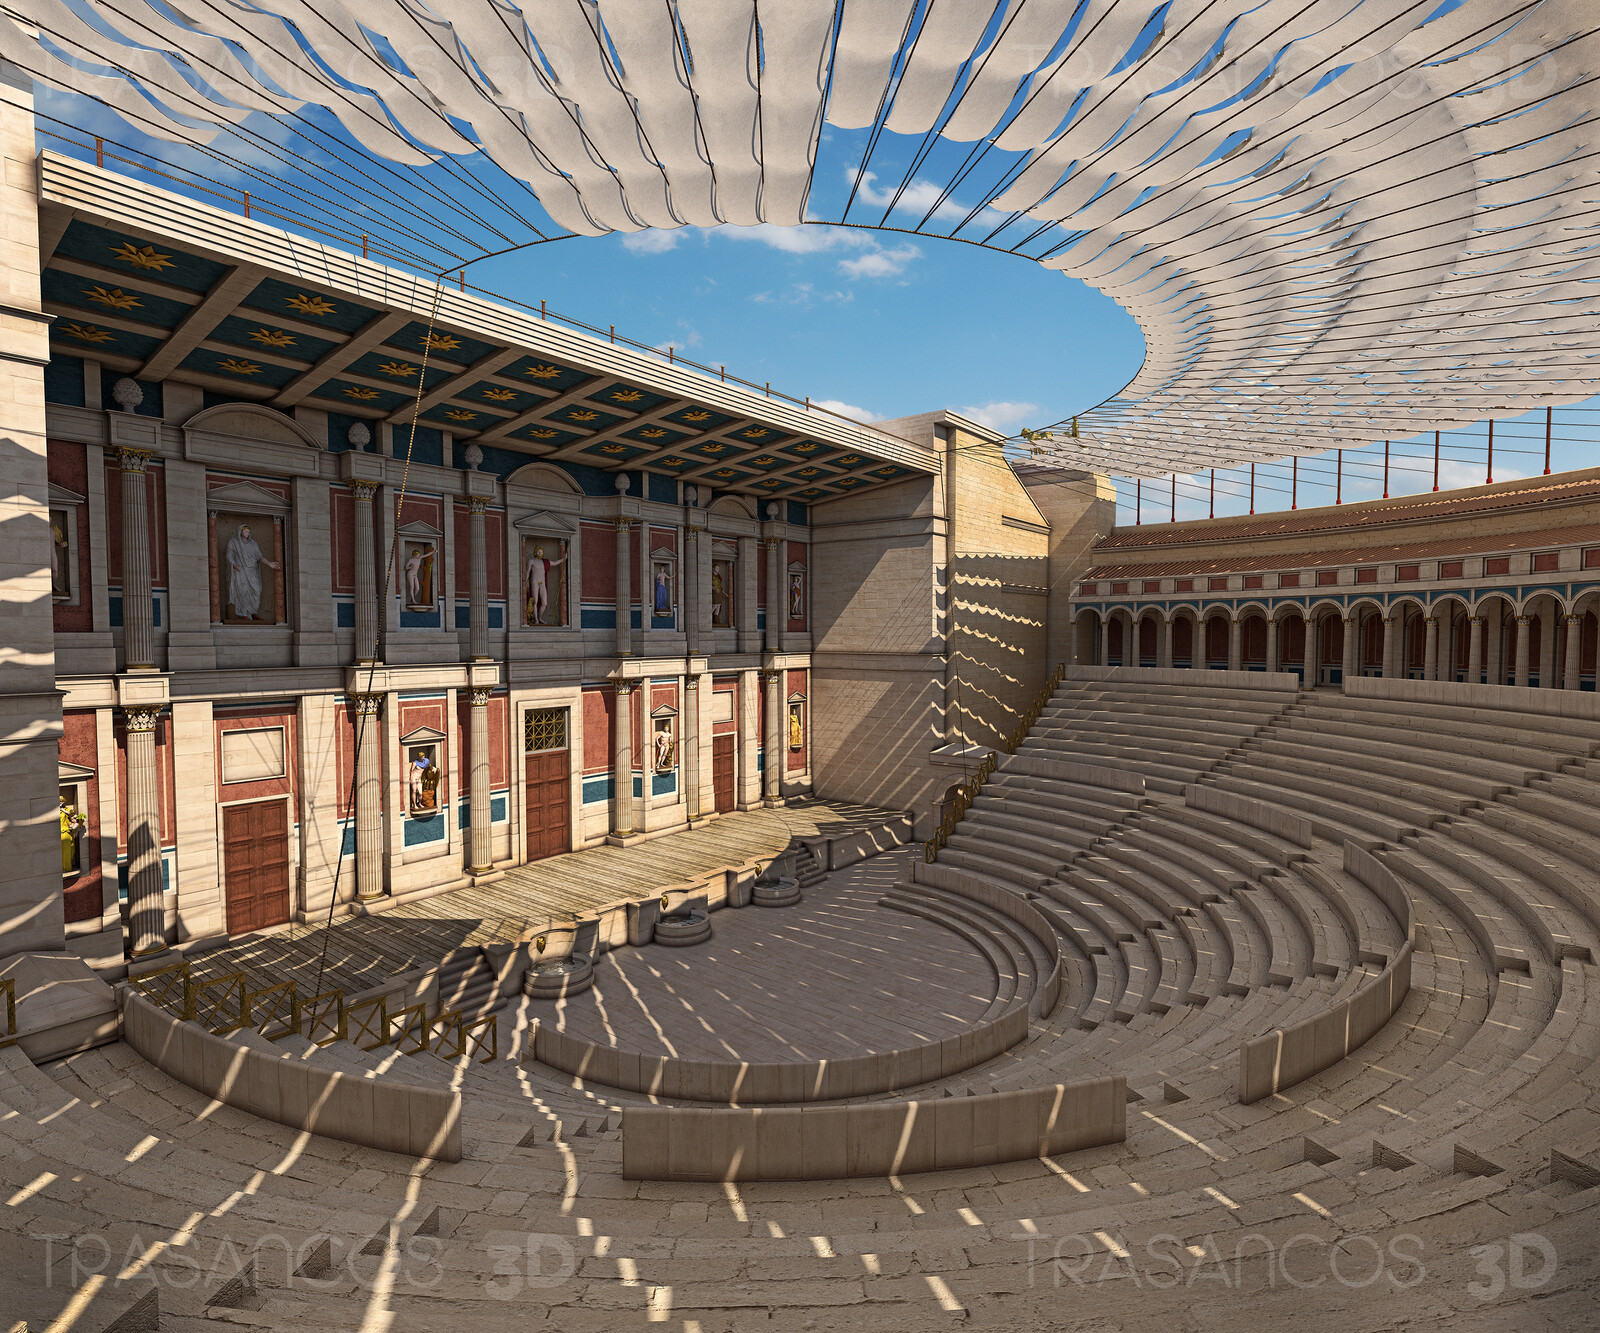 View of the interior of Timgad roman Theatre. Modeled in collaboration with: - Alejandro Soriano